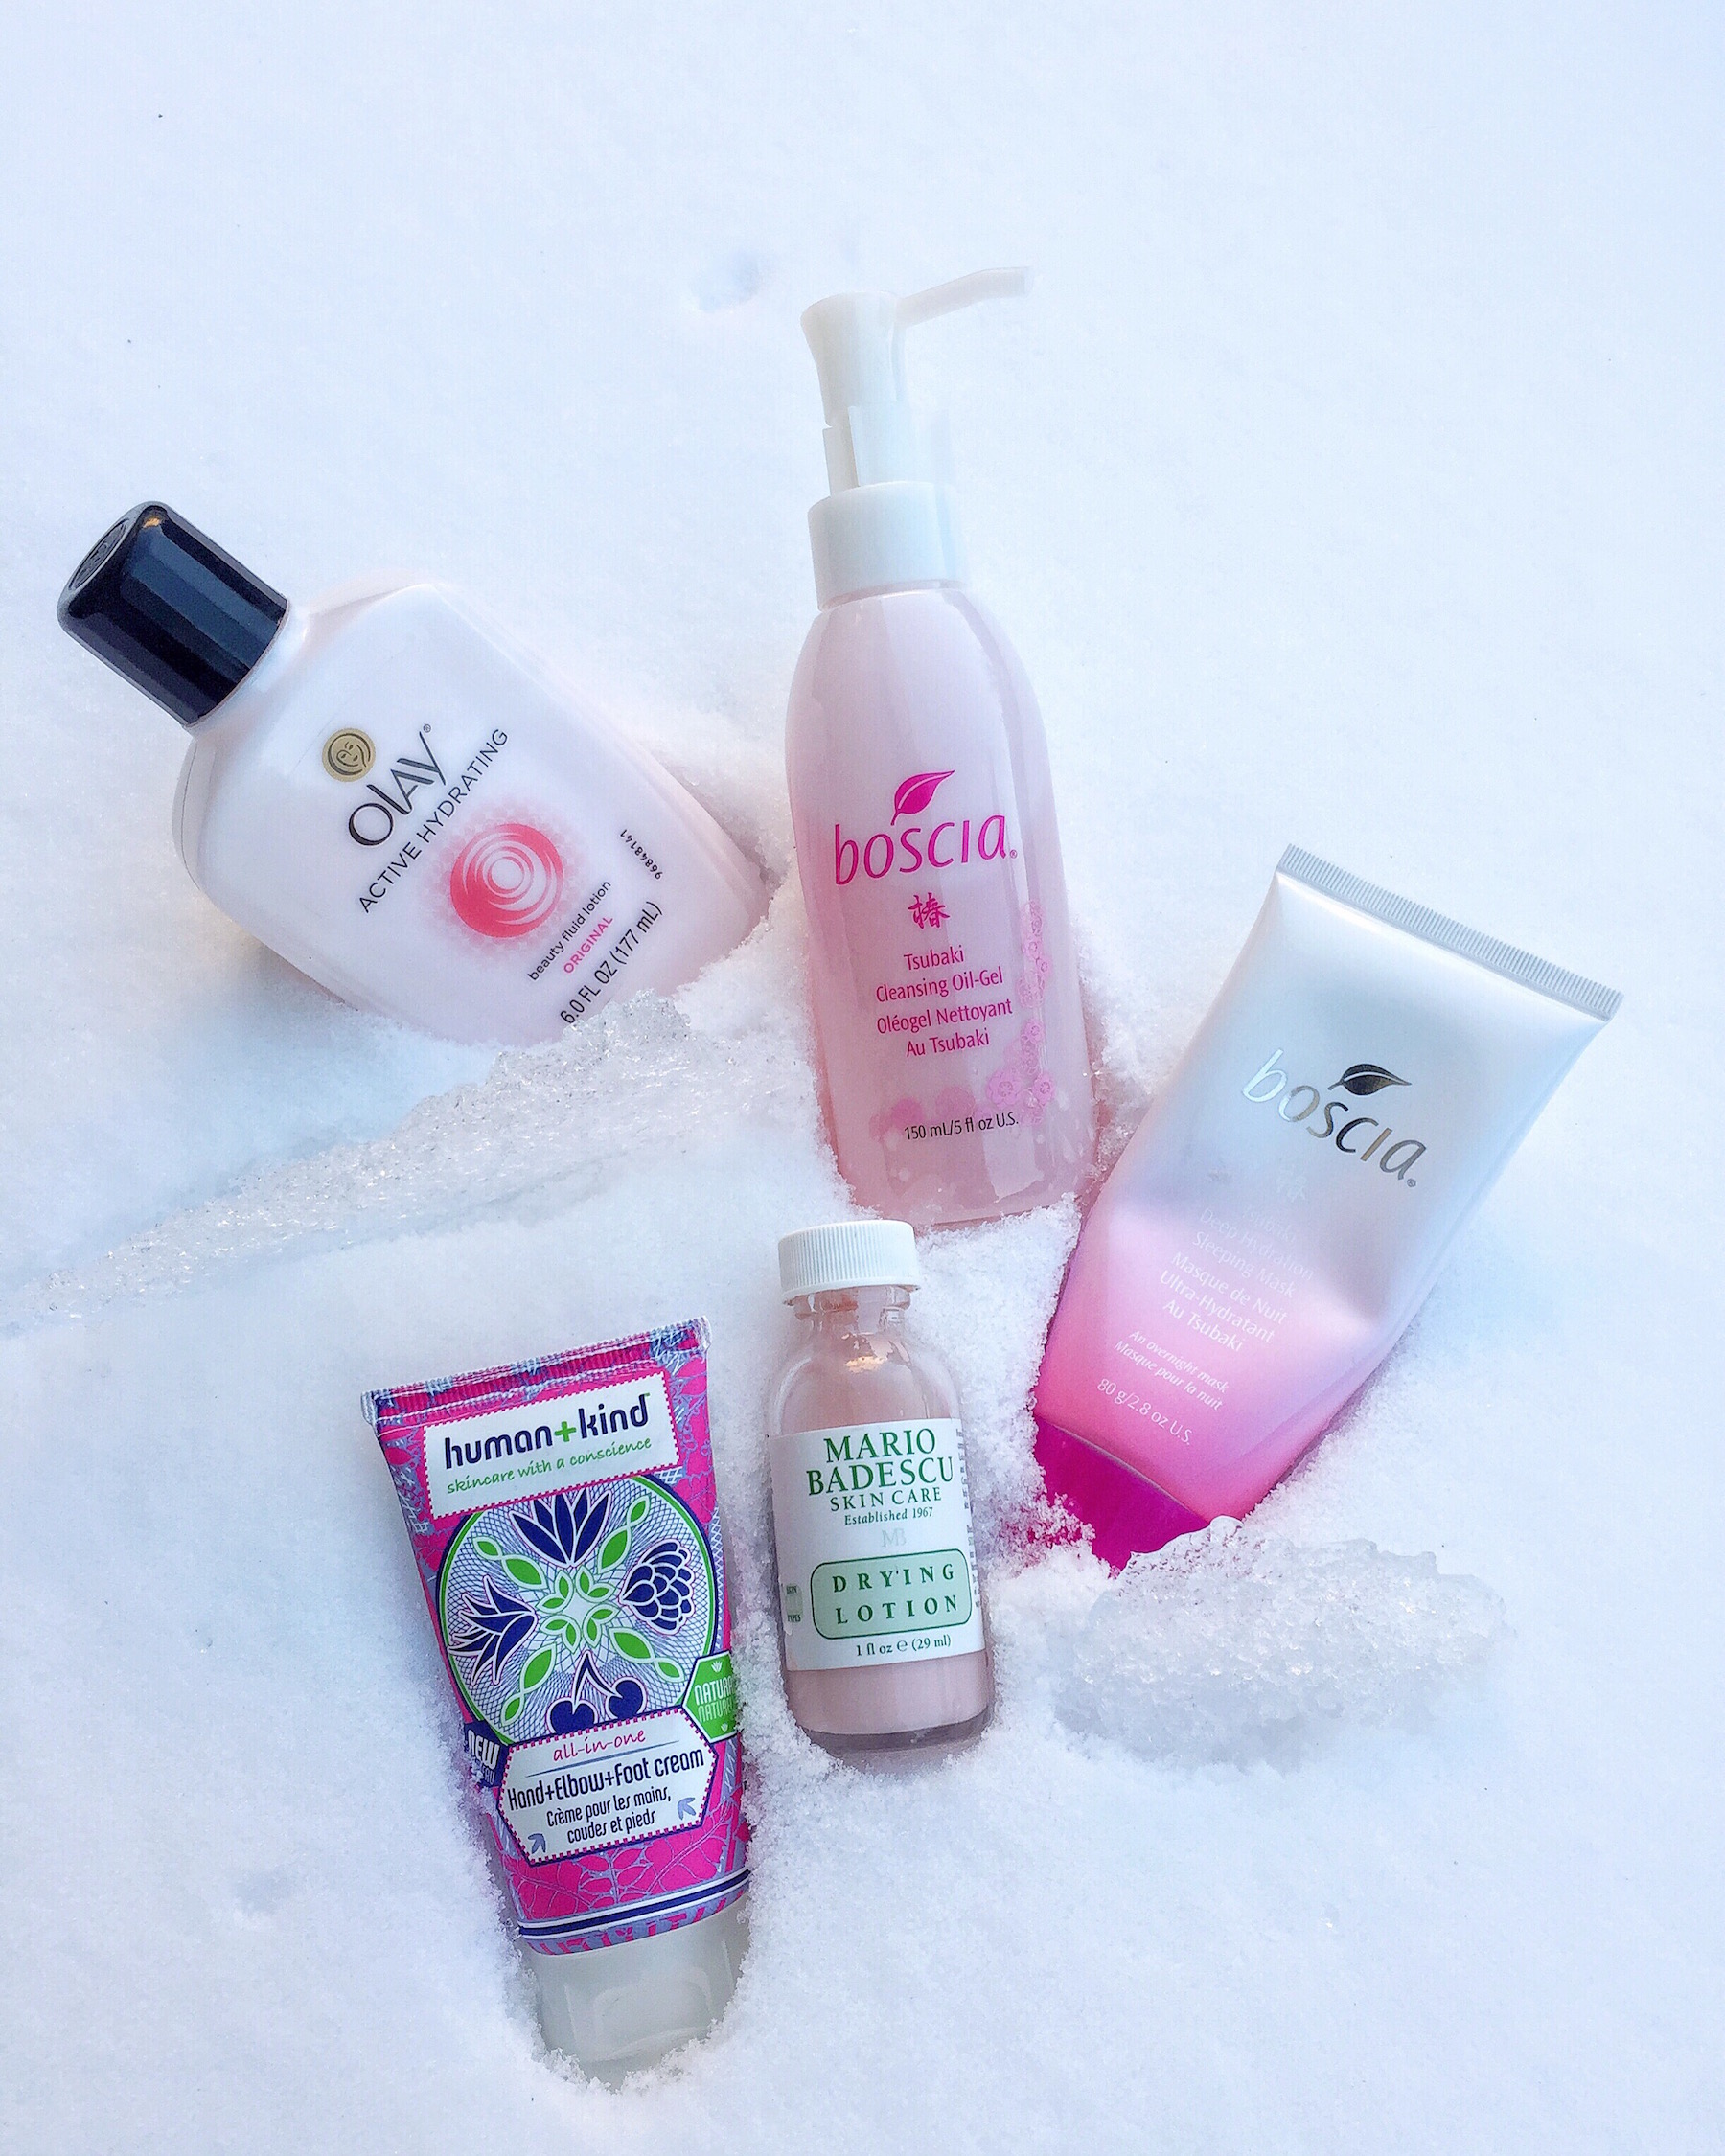 winter skin care blog fashion beauty lifestyle